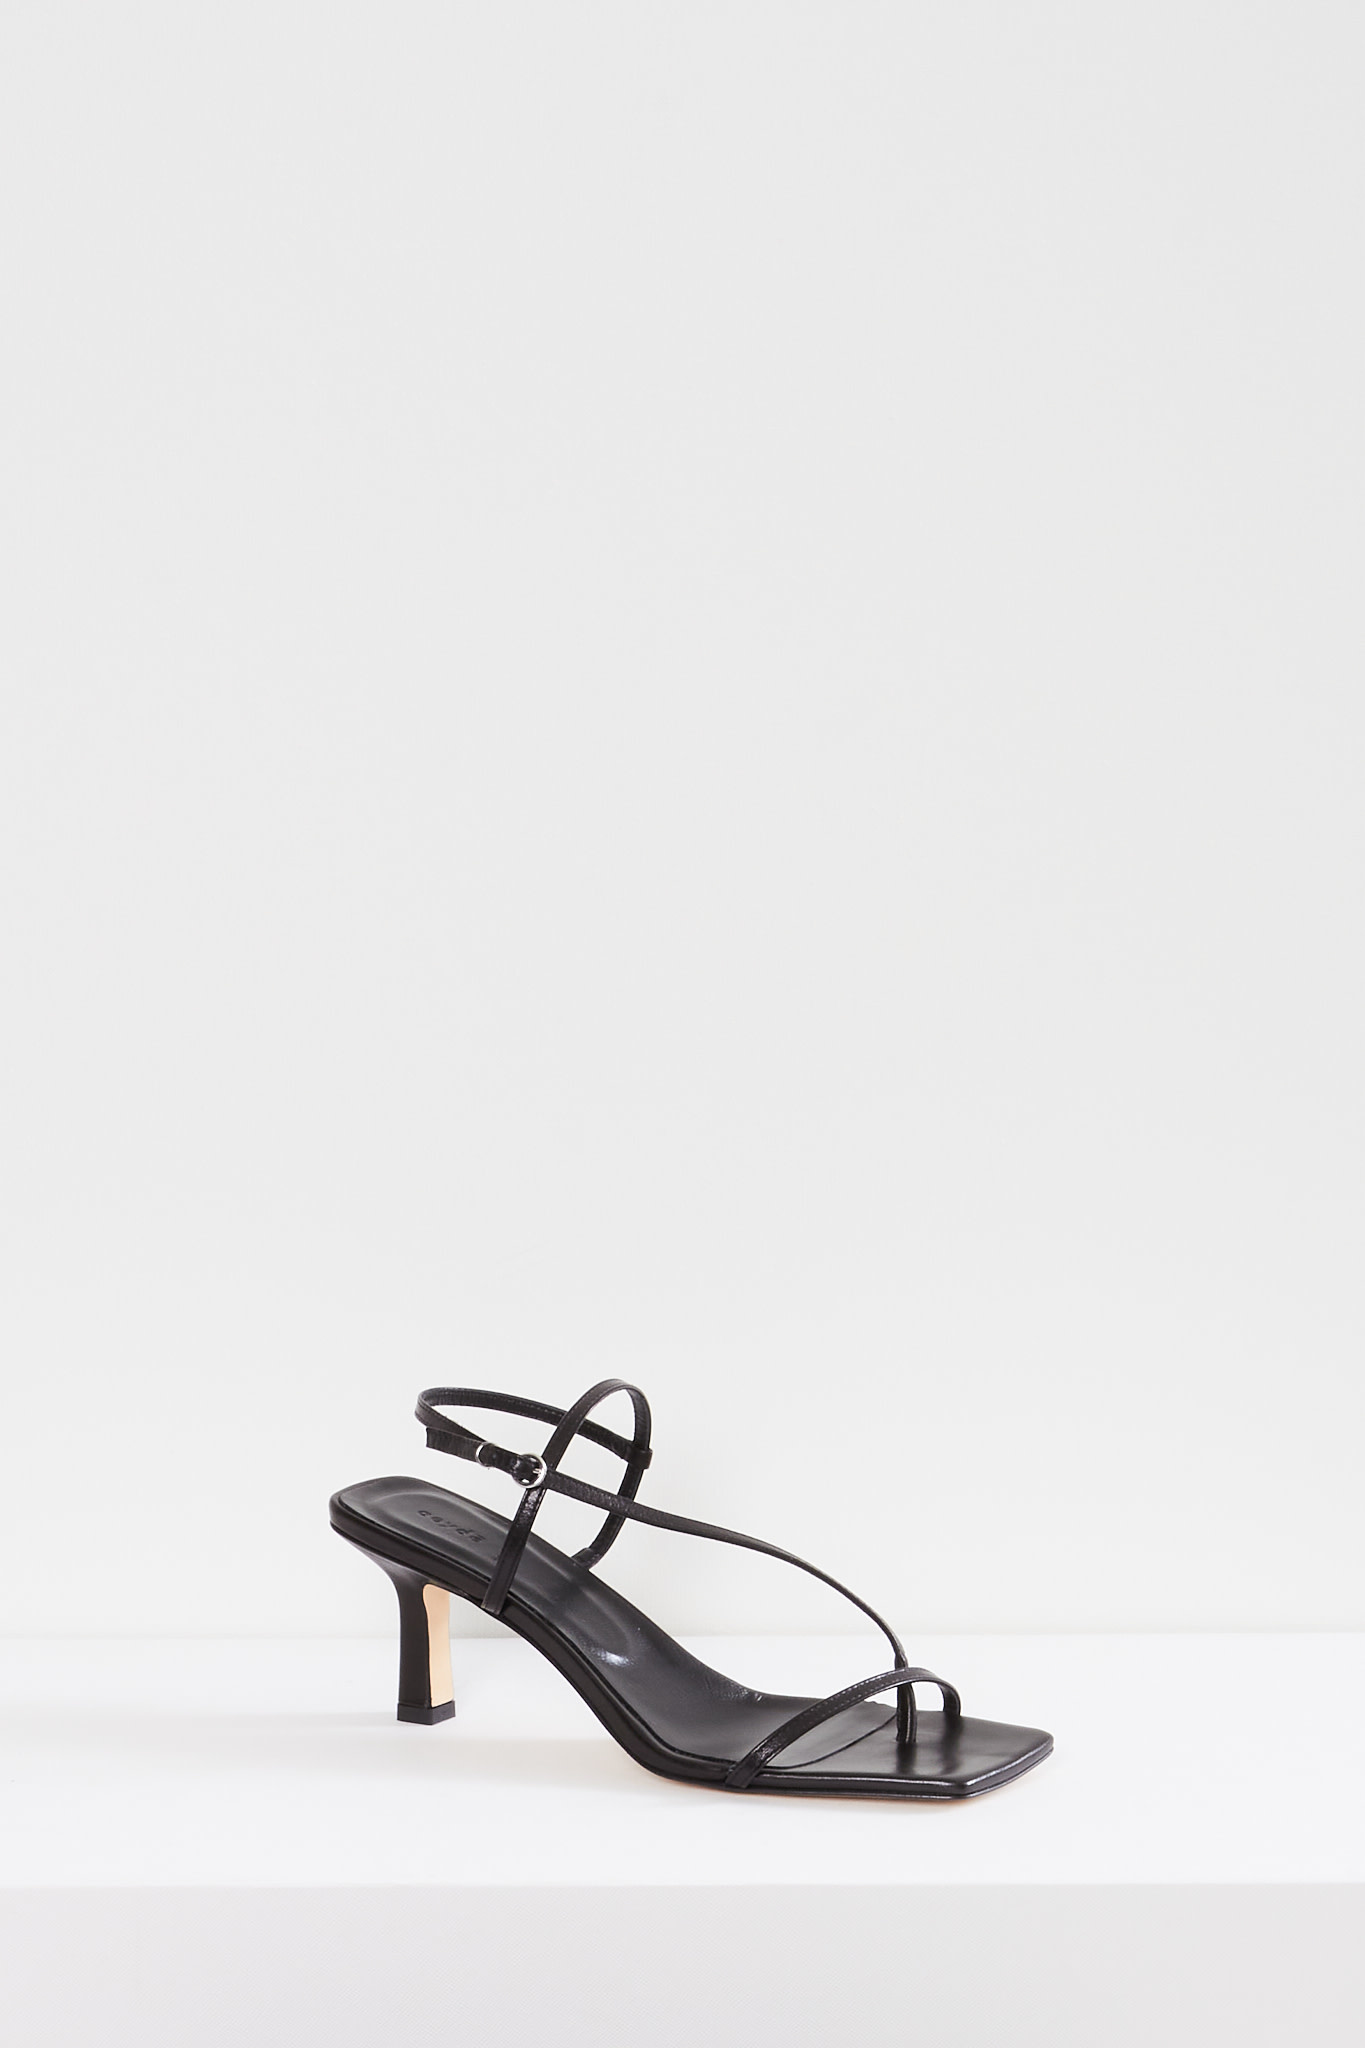 Aeyde Elise nappa leather sandals